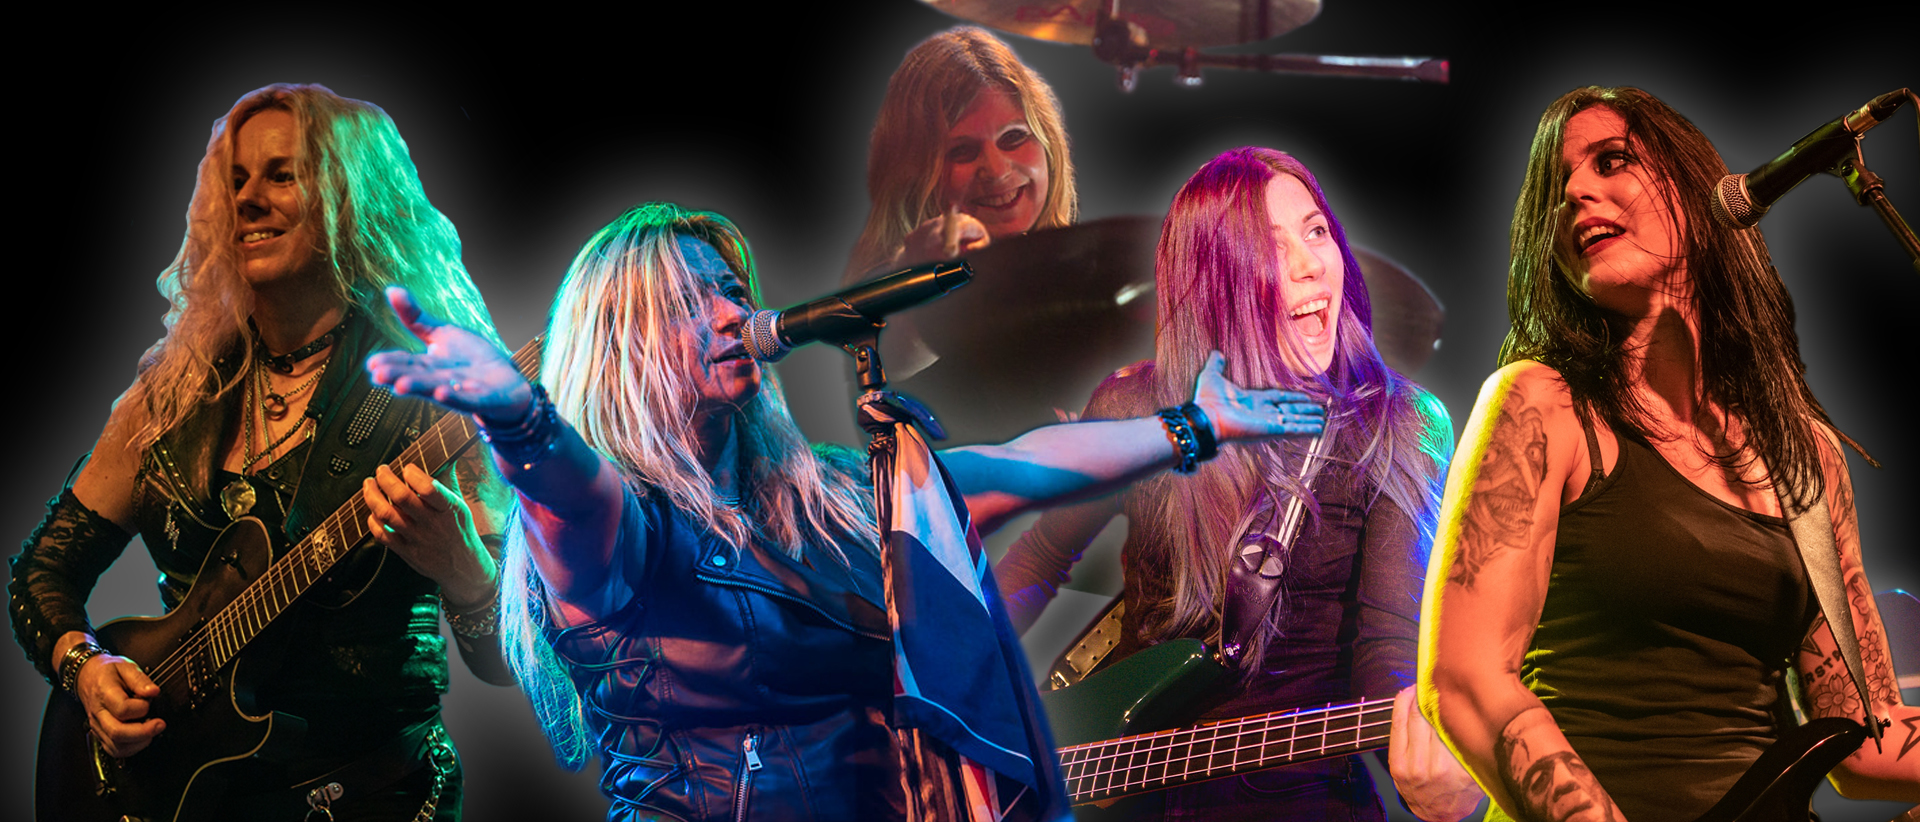 She's Got Balls - Ladies Tribute to AC/DC - Collage September 2019 - Iris Boanta - Cathleen Catman - Jani Jäckel - Anja Assmuth - Lea Fuji